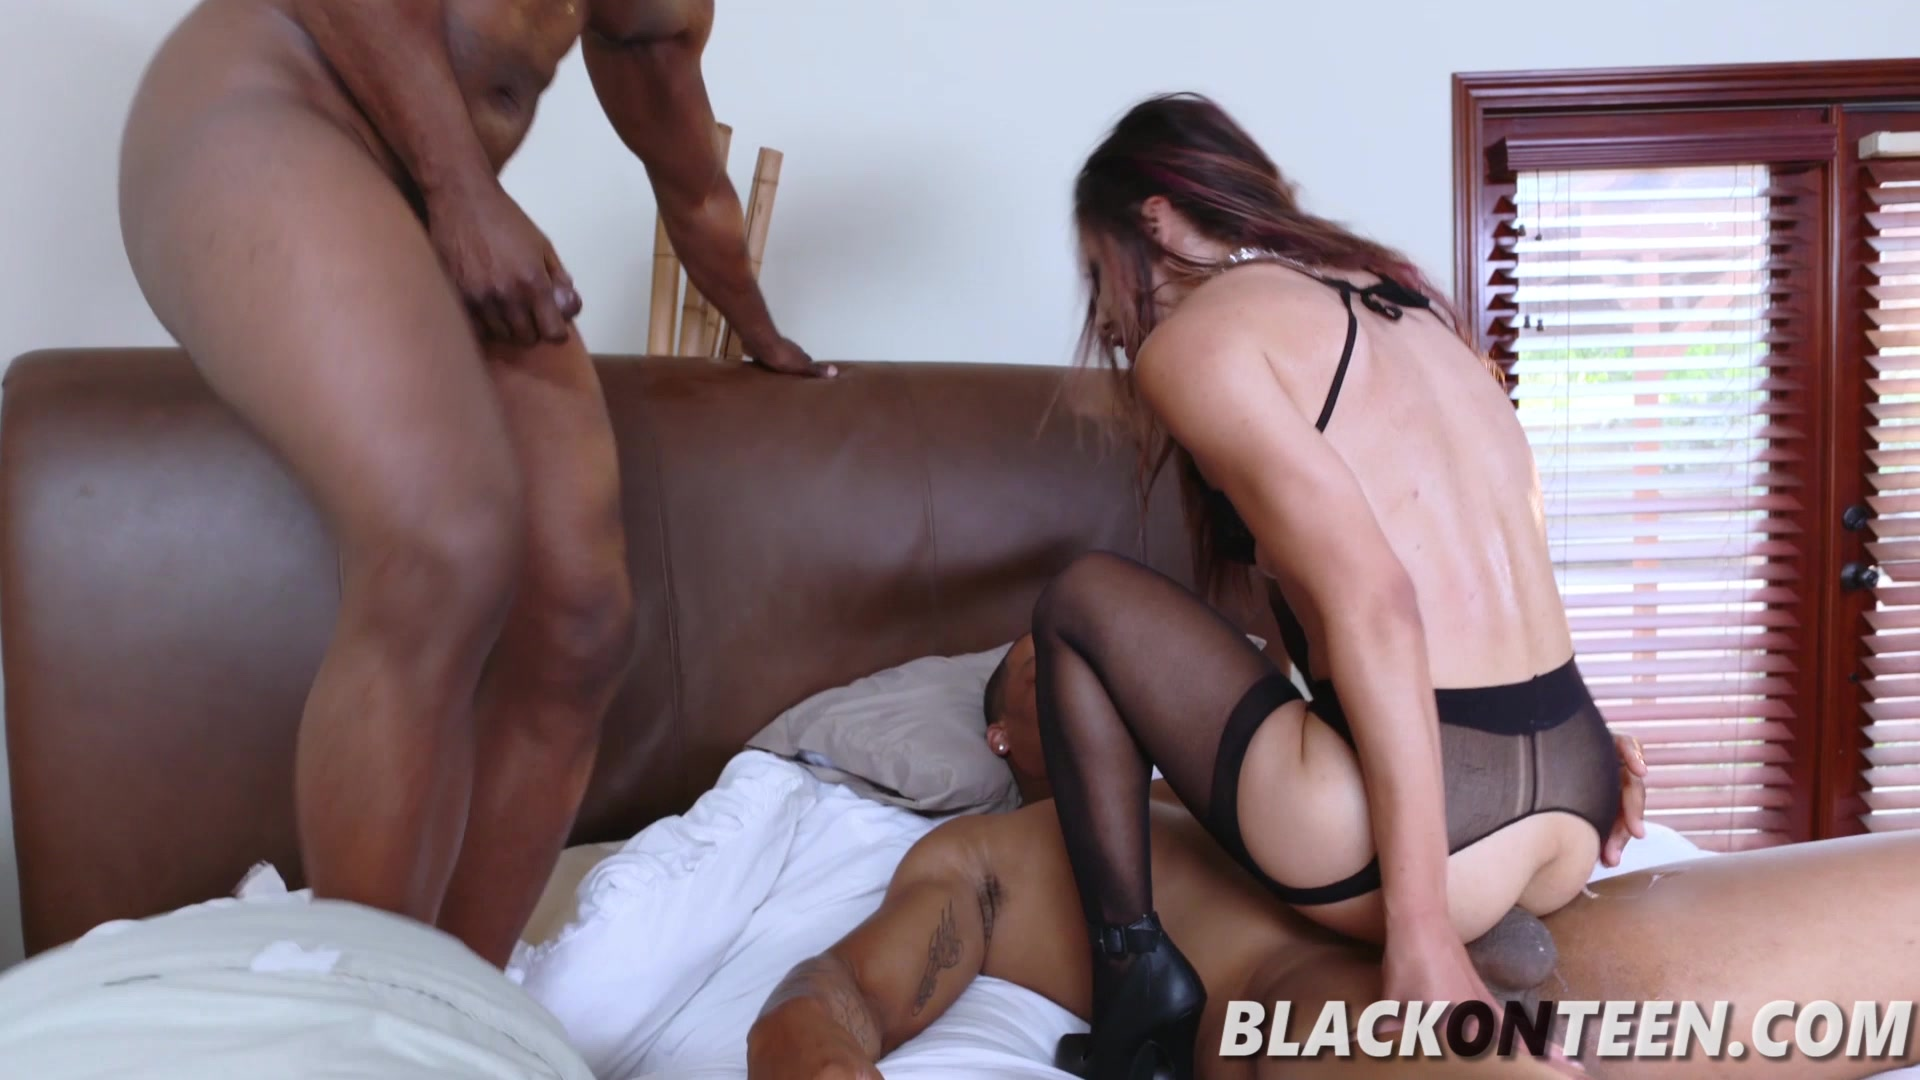 Adult gallery Pussy eating threesome chastity